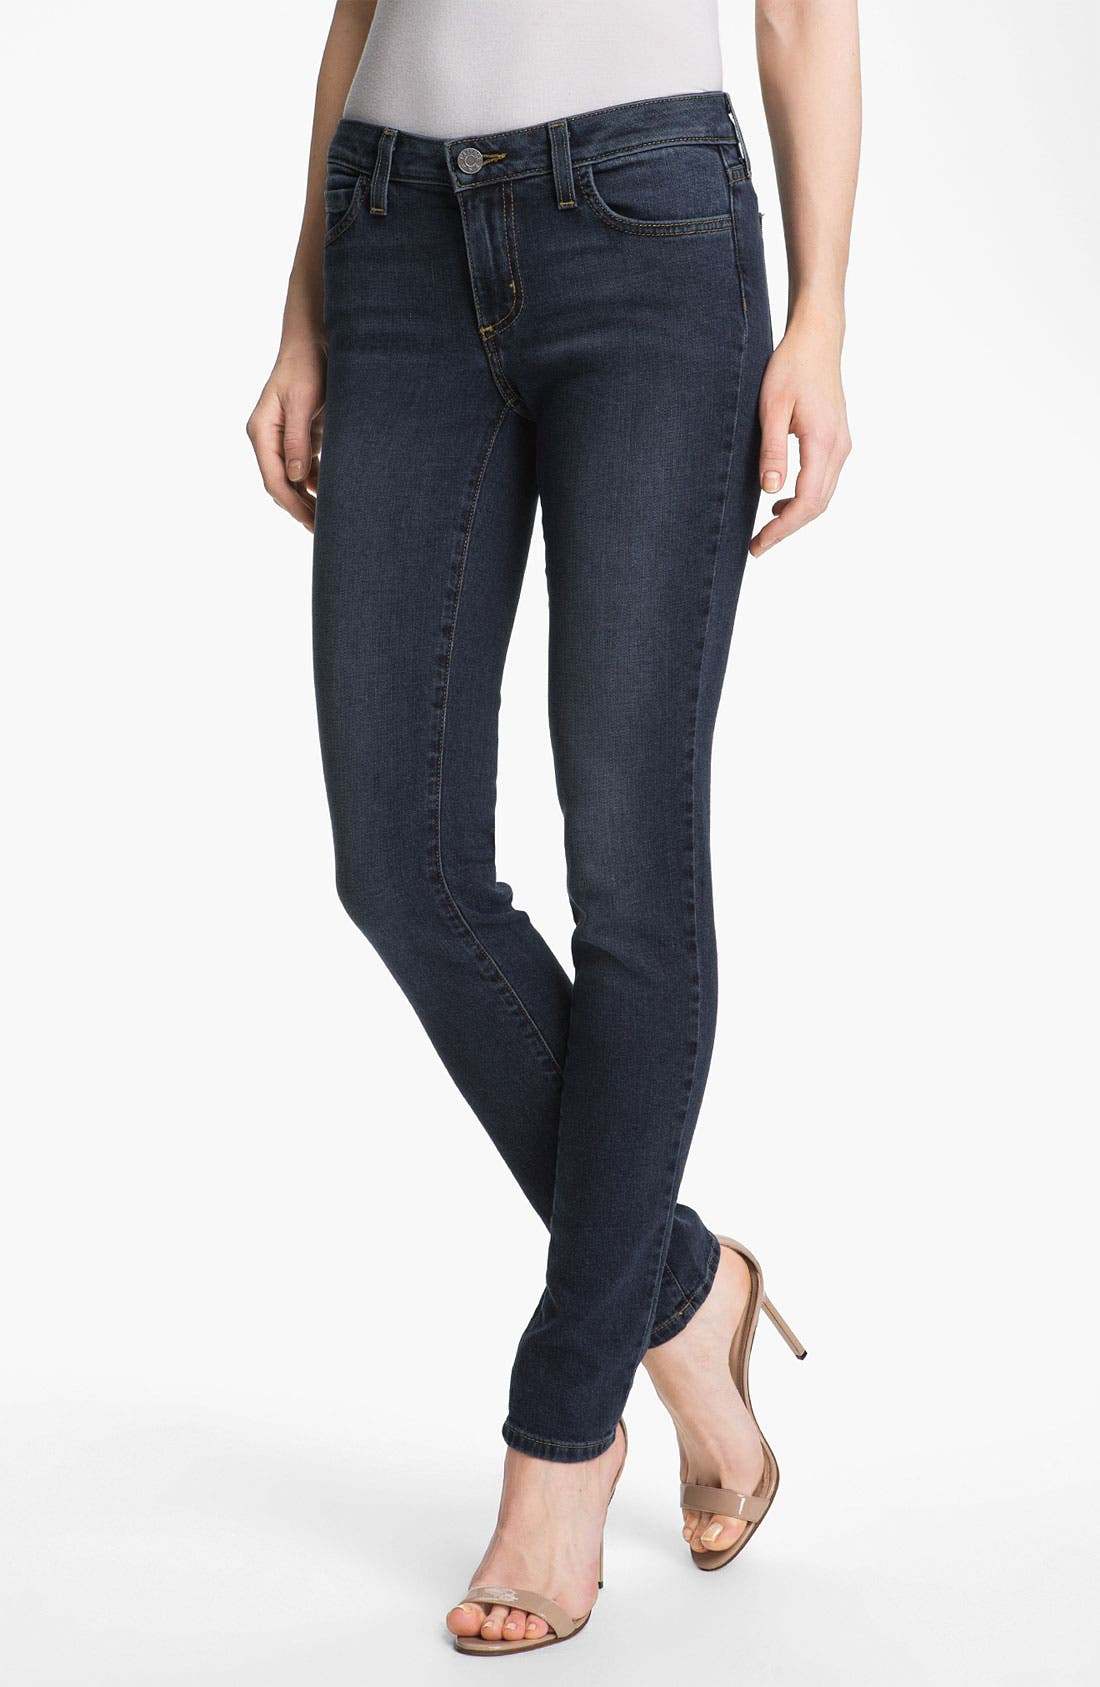 Alternate Image 1 Selected - L'AGENCE 'Nicole' Skinny Jeans